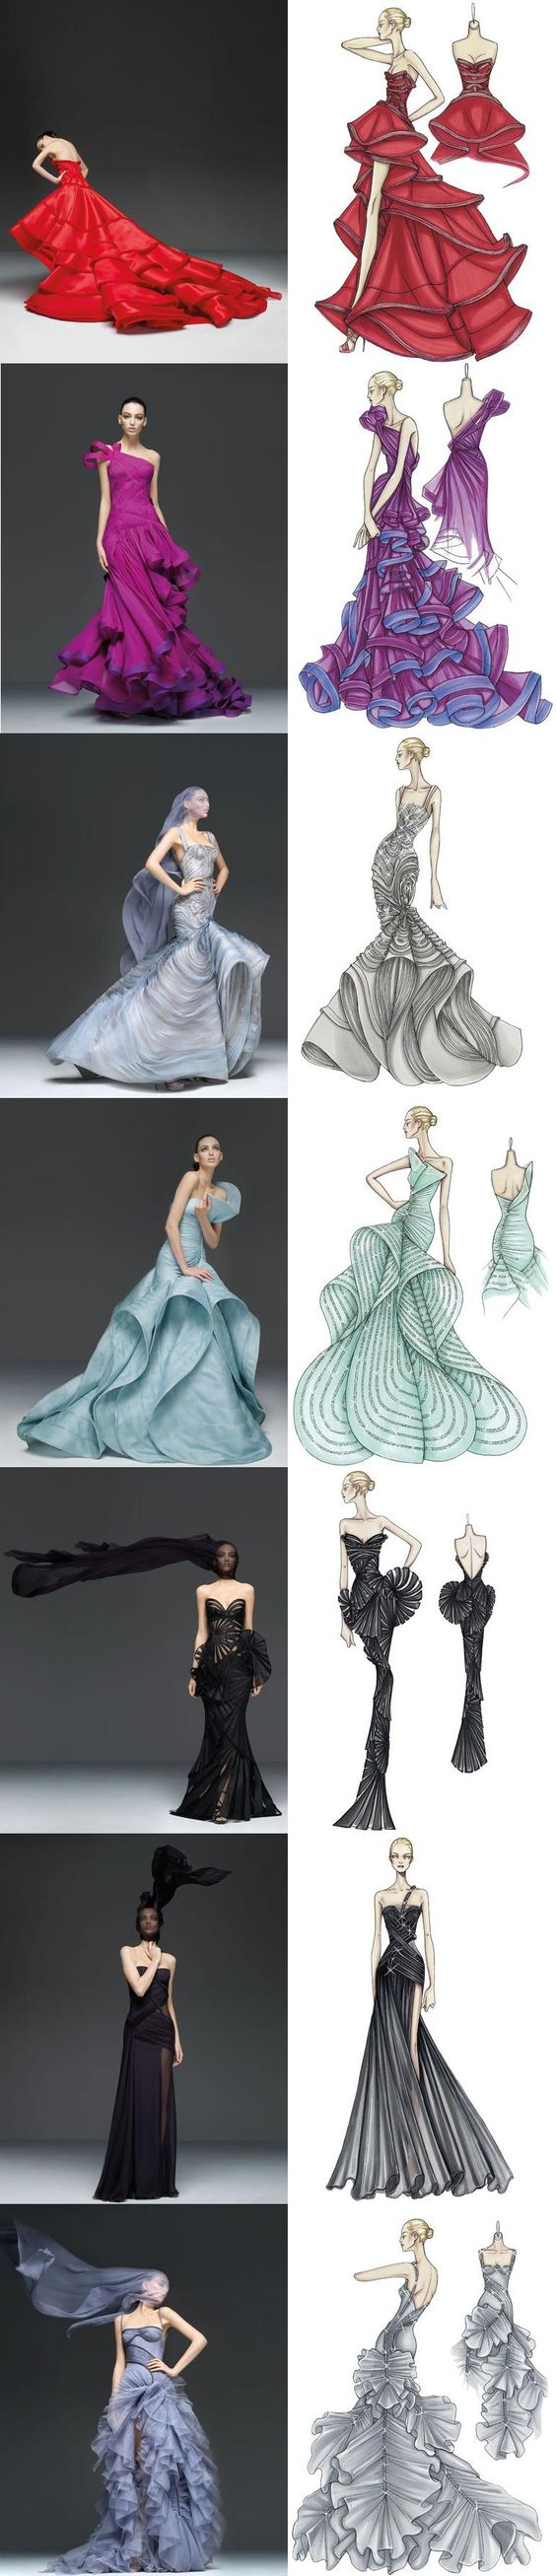 Sketches, Versace and Atelier on Pinterest